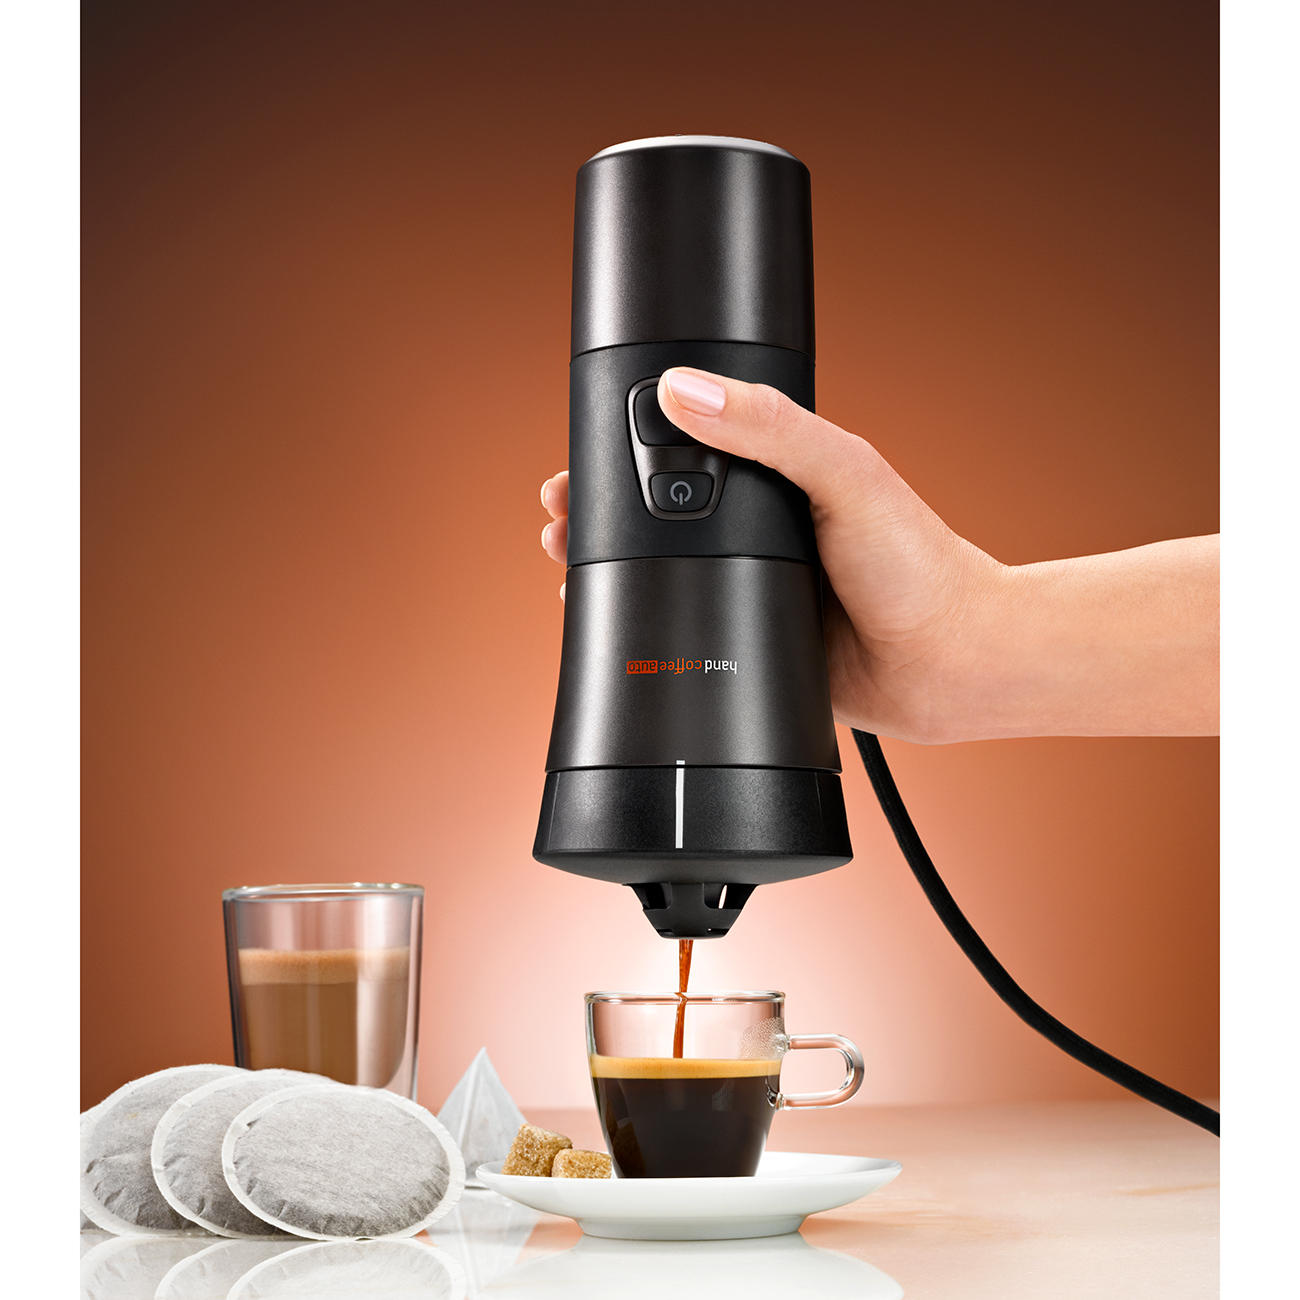 handcoffee mobile kaffeemaschine f r kaffepads 12 volt handpresso. Black Bedroom Furniture Sets. Home Design Ideas